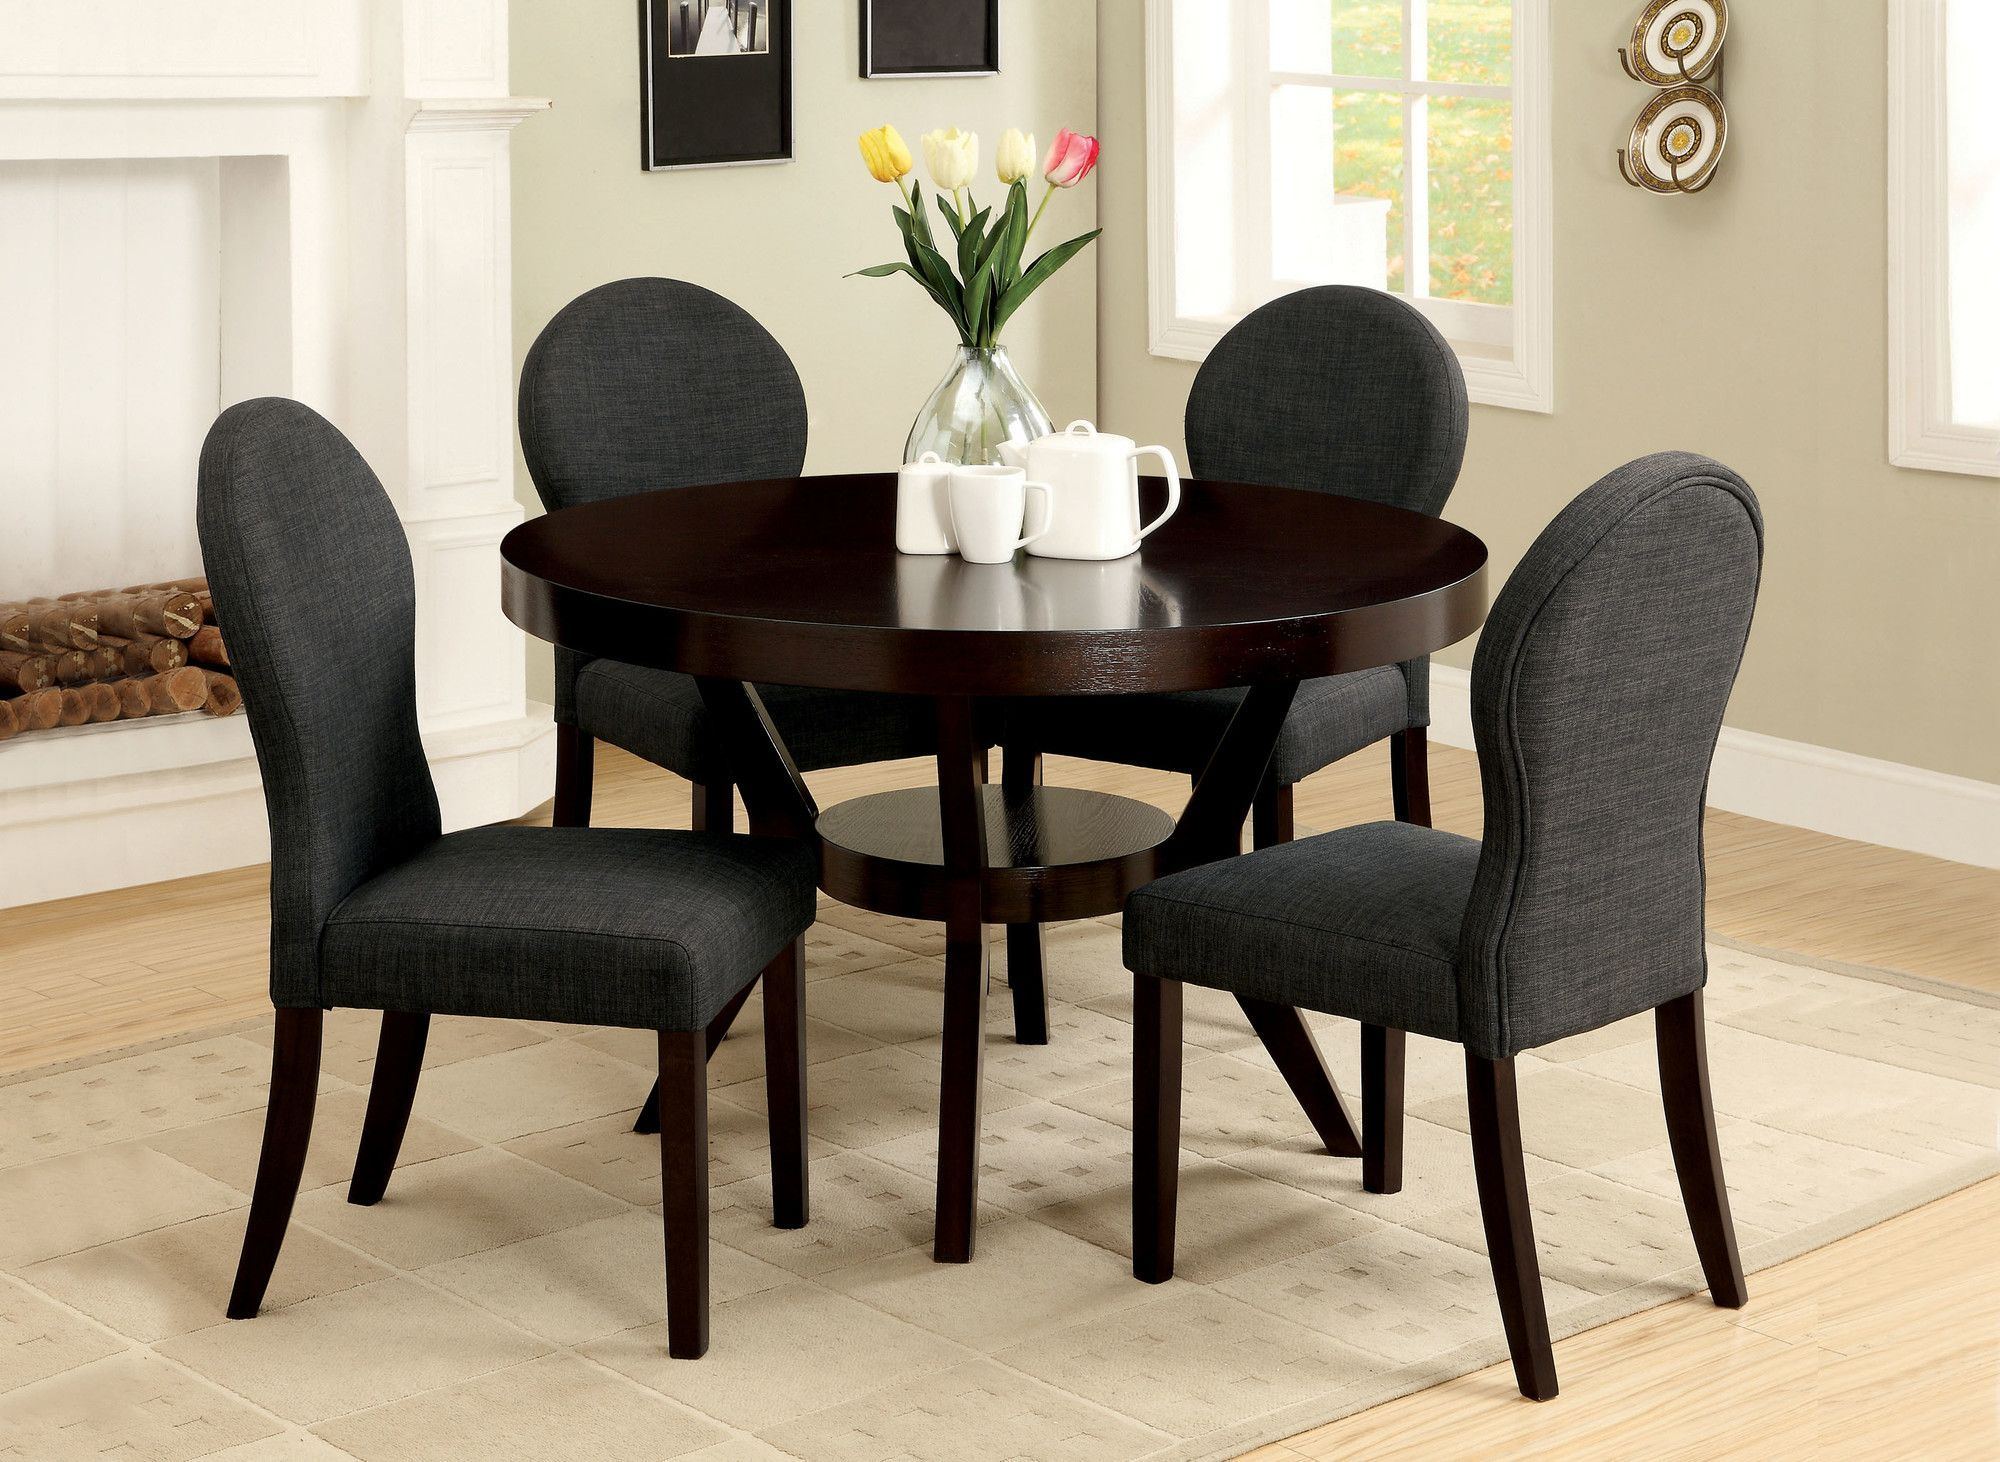 Connor transitional dining table transitional dining tables and